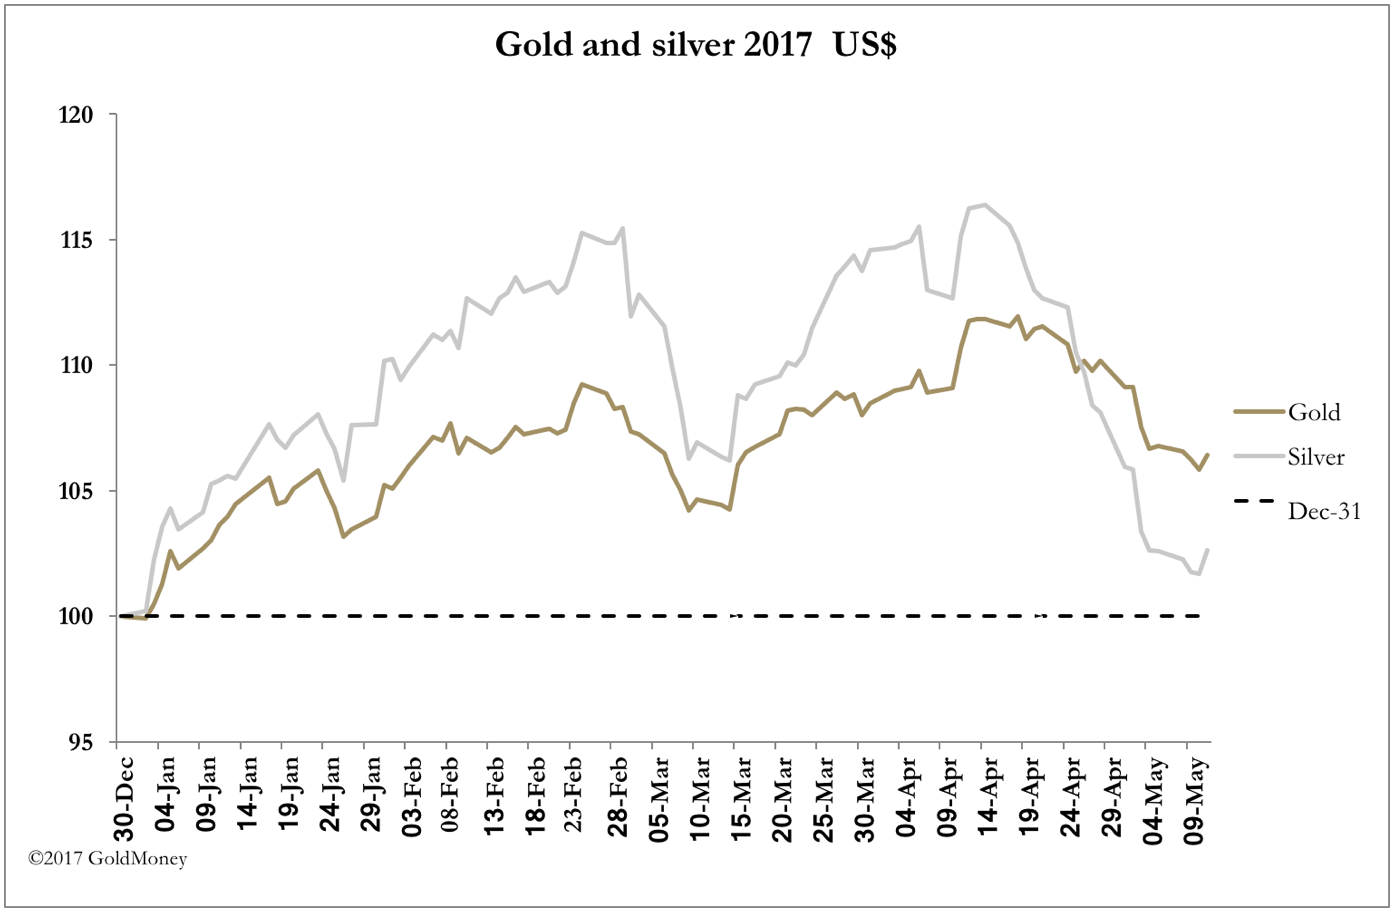 Gold vs. Silver May 2017